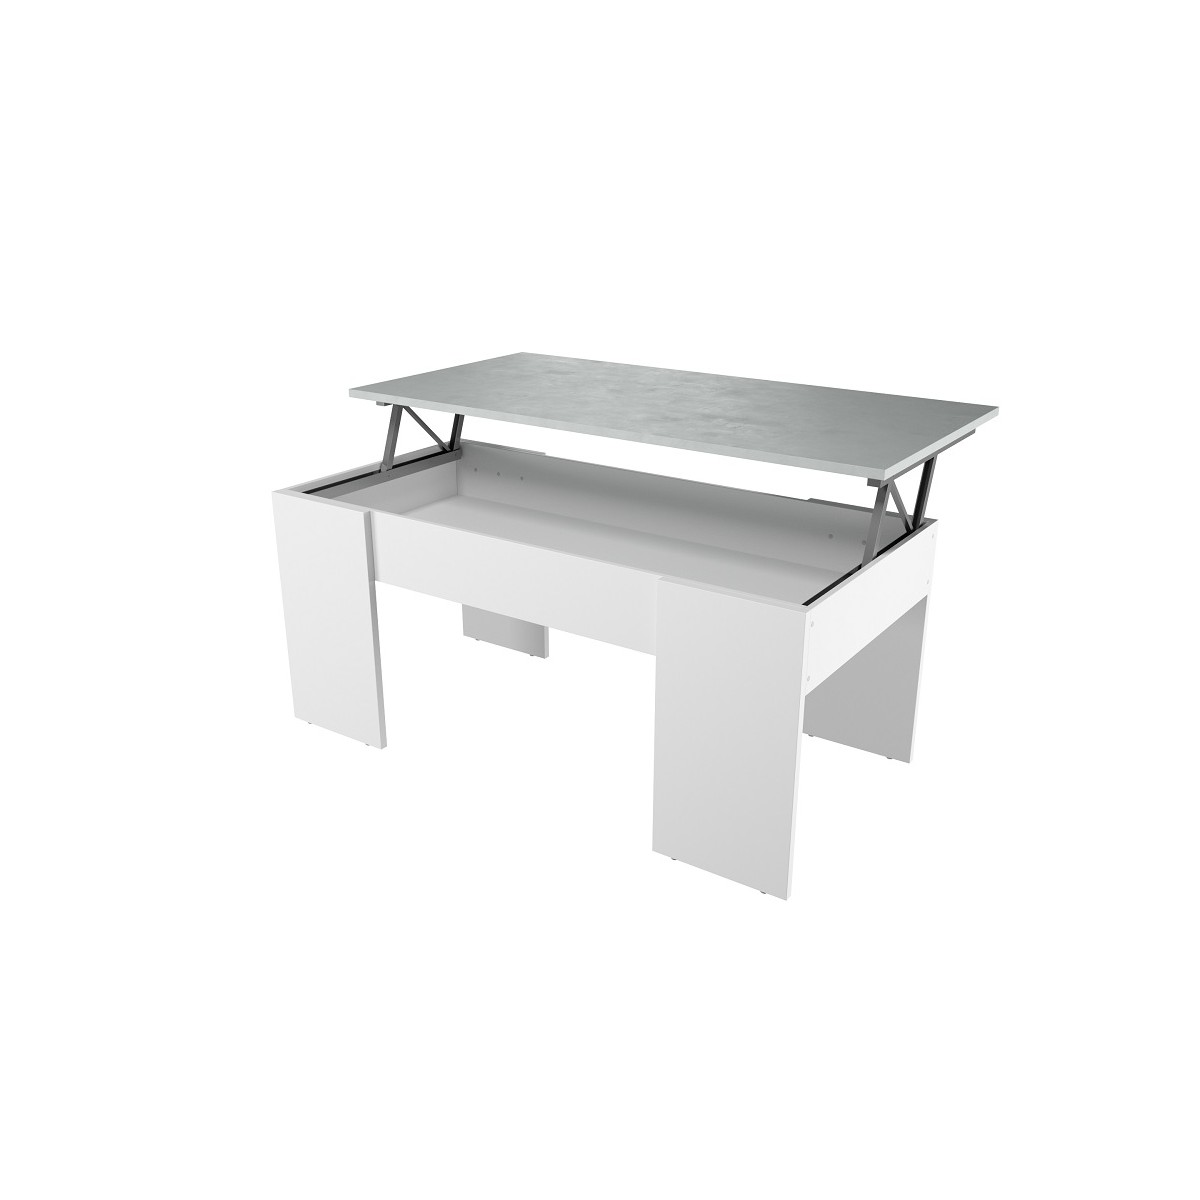 Table Basse Modulable Contemporain Blanc Béton 100x50 Cm